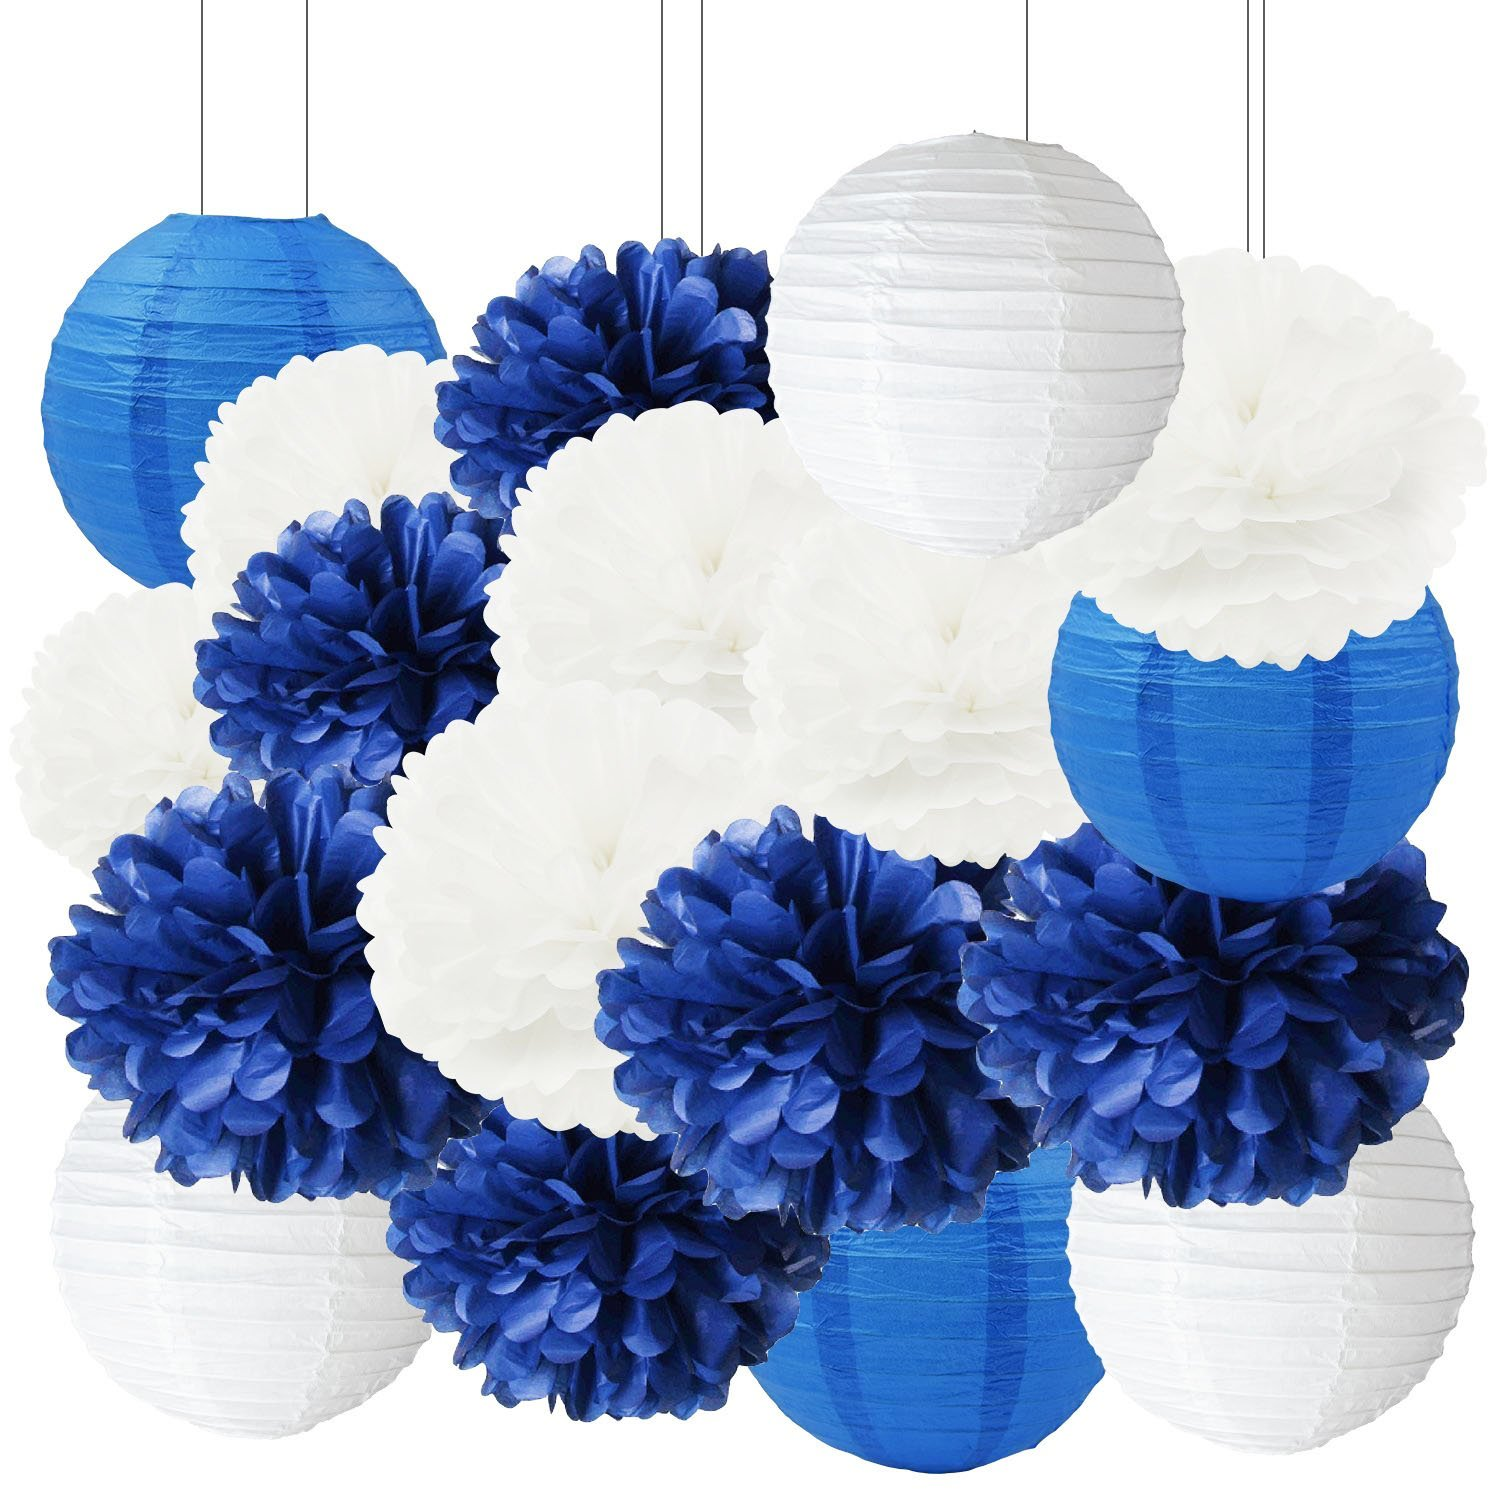 Furuix 18pcs White Navy Blue Tissue Paper Pom Poms Paper Lanterns 8inch 10inch 12inch Mixed Package for Nautical Mediterranean Themed Party Wedding Paper Garland, Bridal Shower Decorations Baby Shower Nursery Decoration